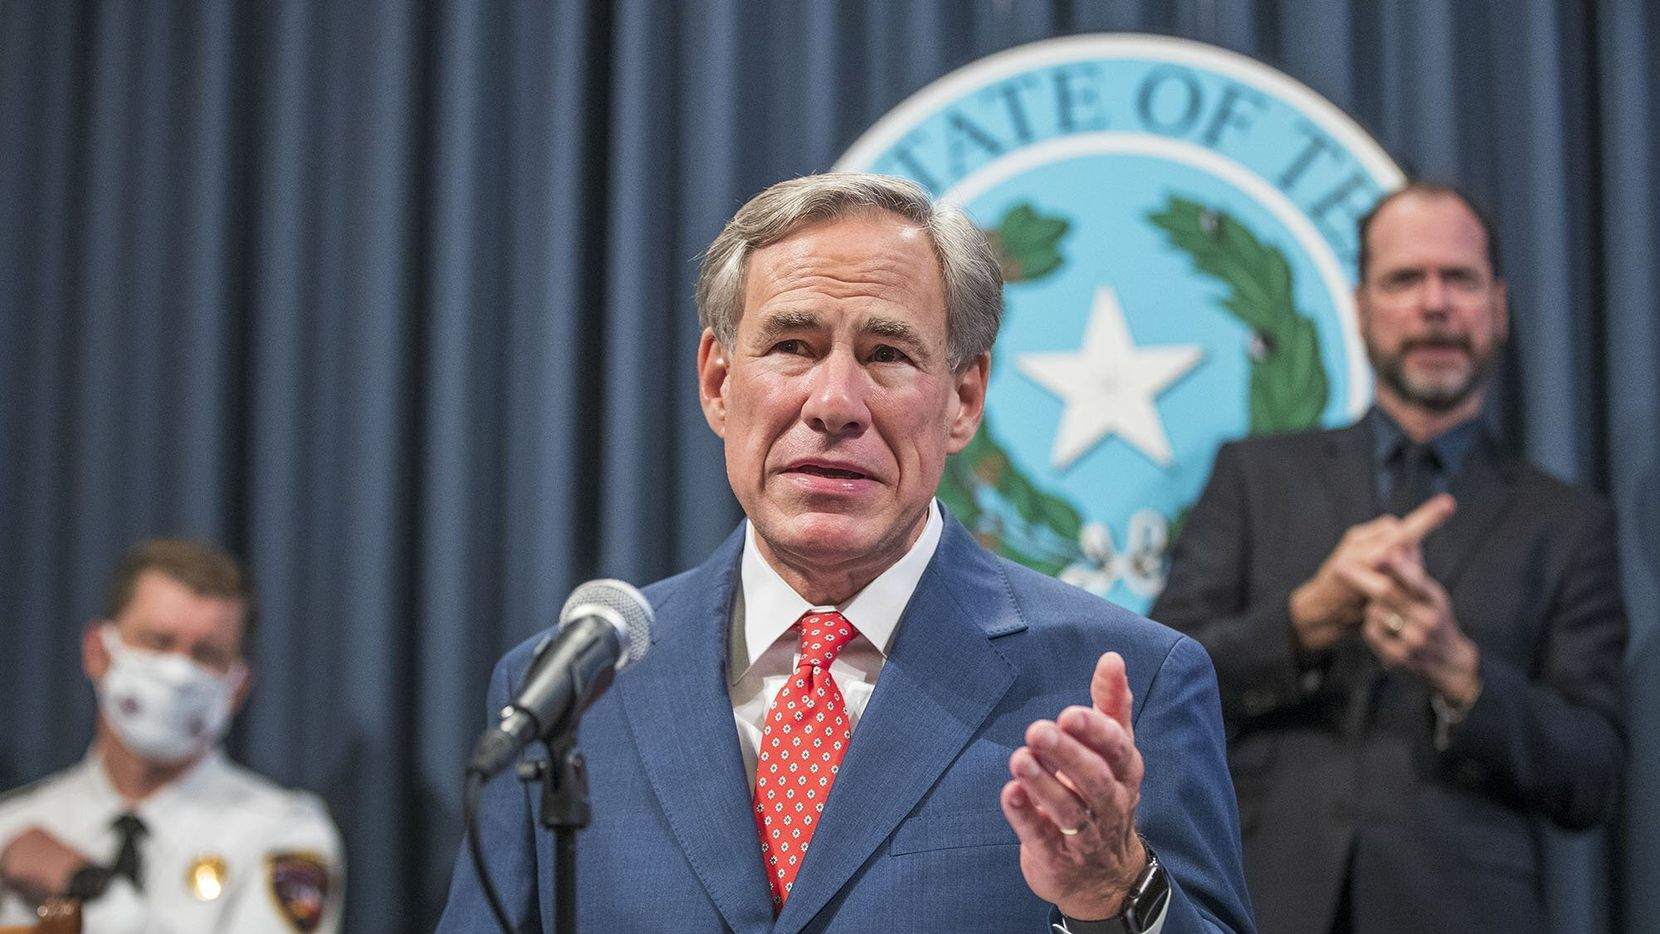 No new shutdown of businesses in Texas is coming, at least not statewide, Gov. Greg Abbott insisted Thursday, as he touts arrival of new coronavirus treatment at Lubbock hospital.